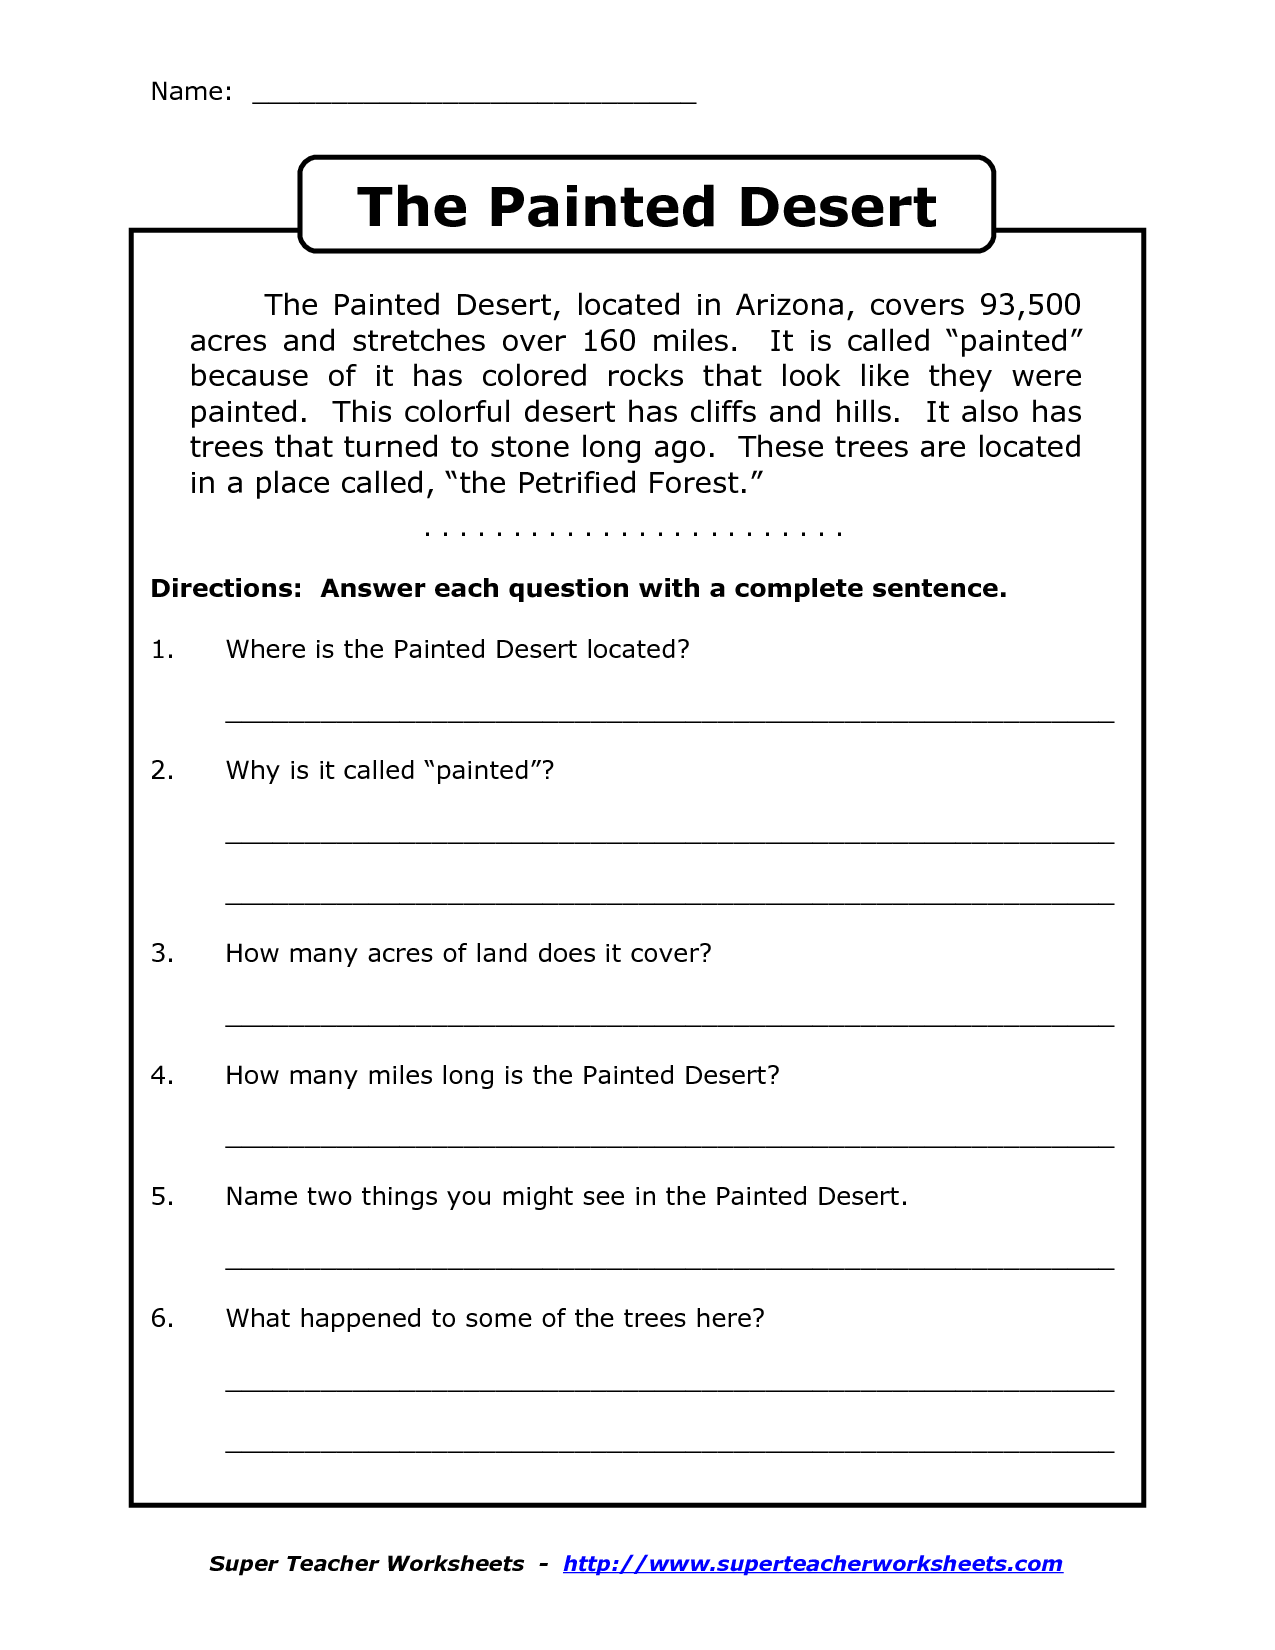 Worksheets Free 3rd Grade Reading Comprehension Worksheets reading worksheets for 4th grade comprehension 3 name the painted desert